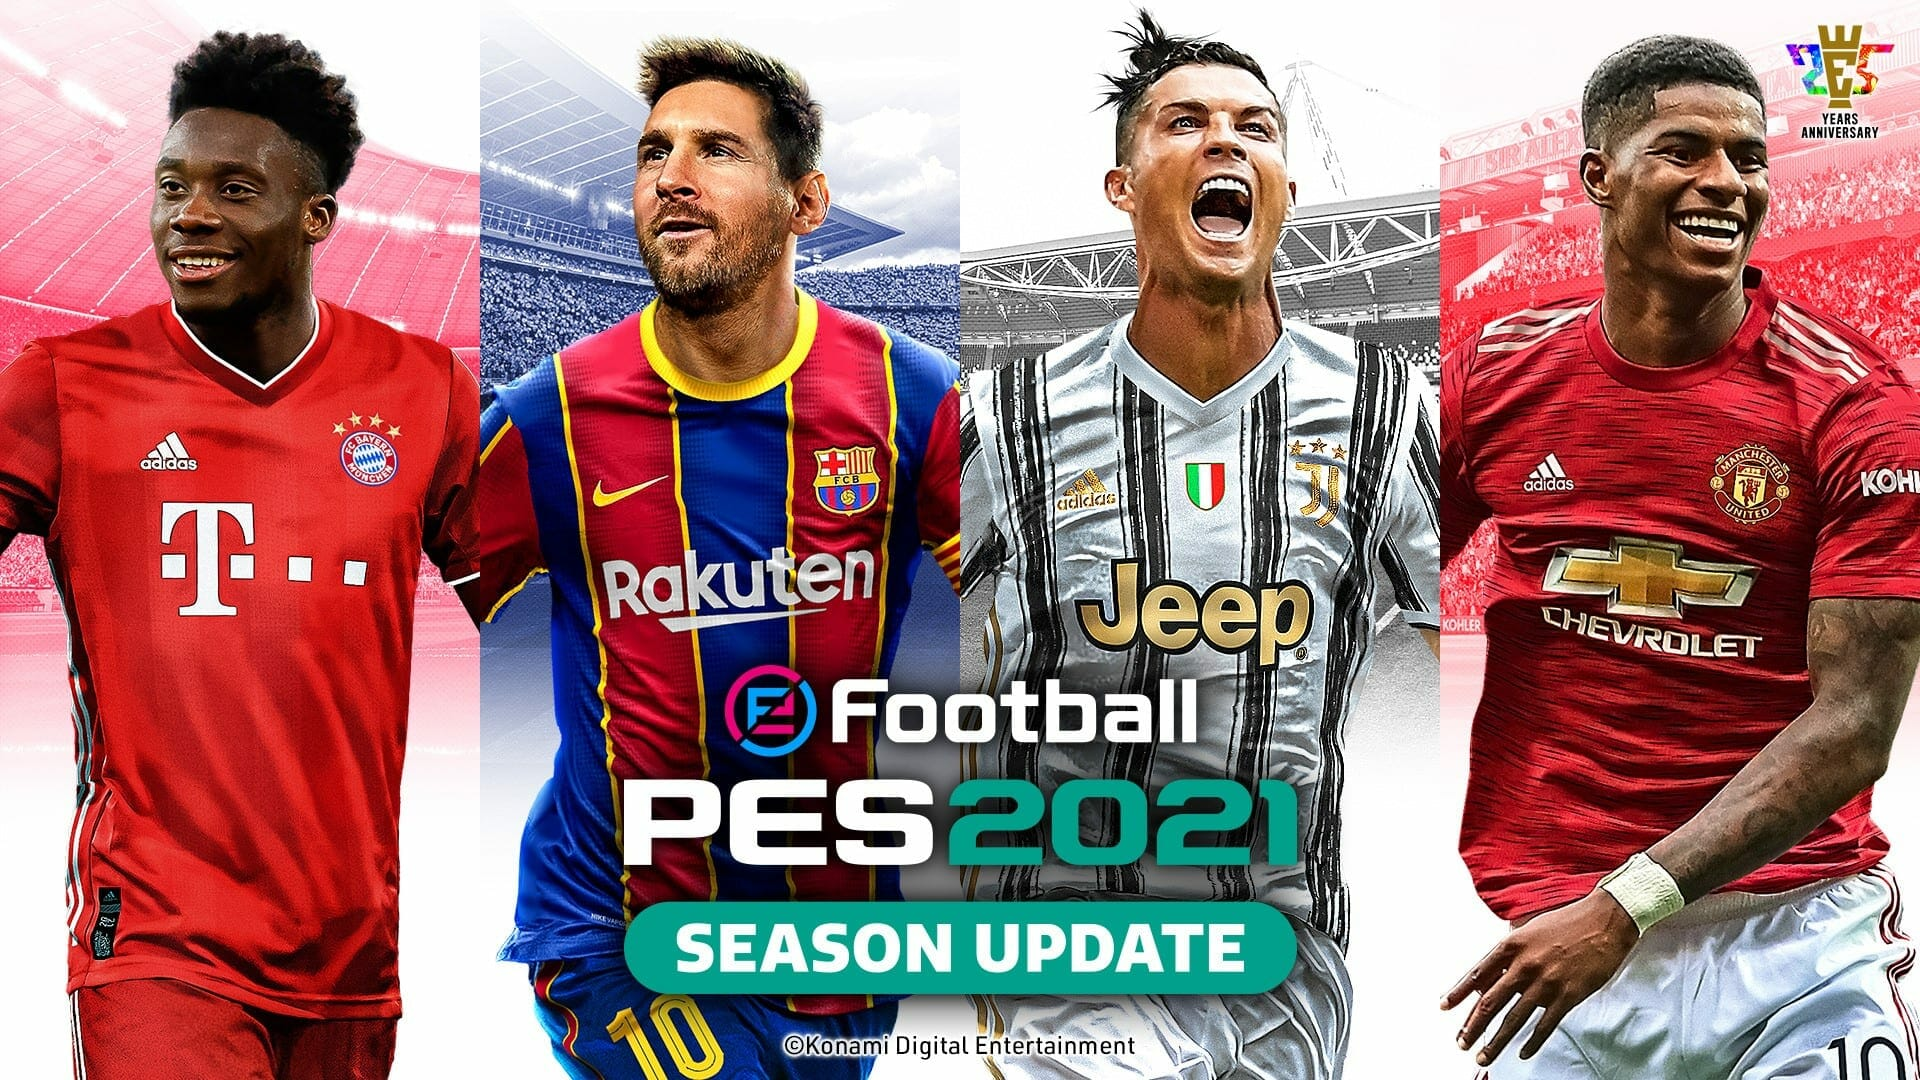 Final Cover for eFootball PES 2021